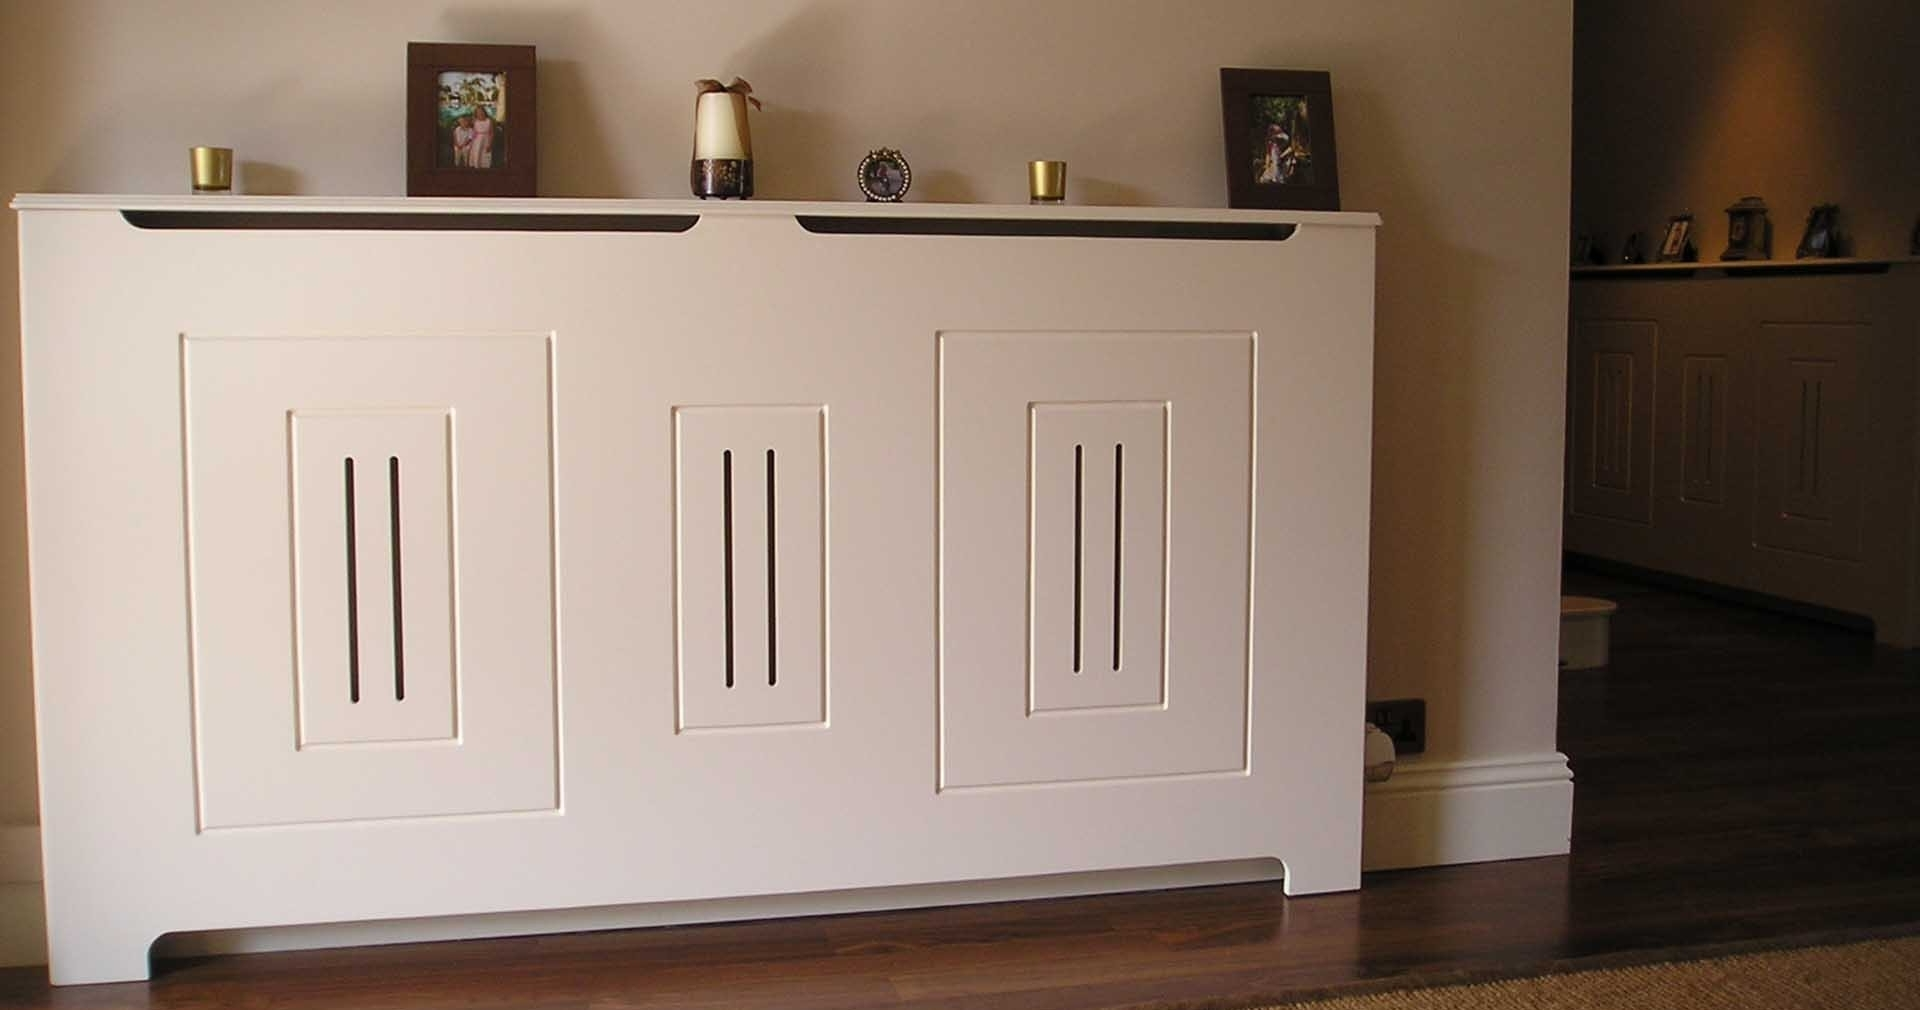 Radiator Cupboards Within Latest Custom Radiator Covers (View 12 of 15)